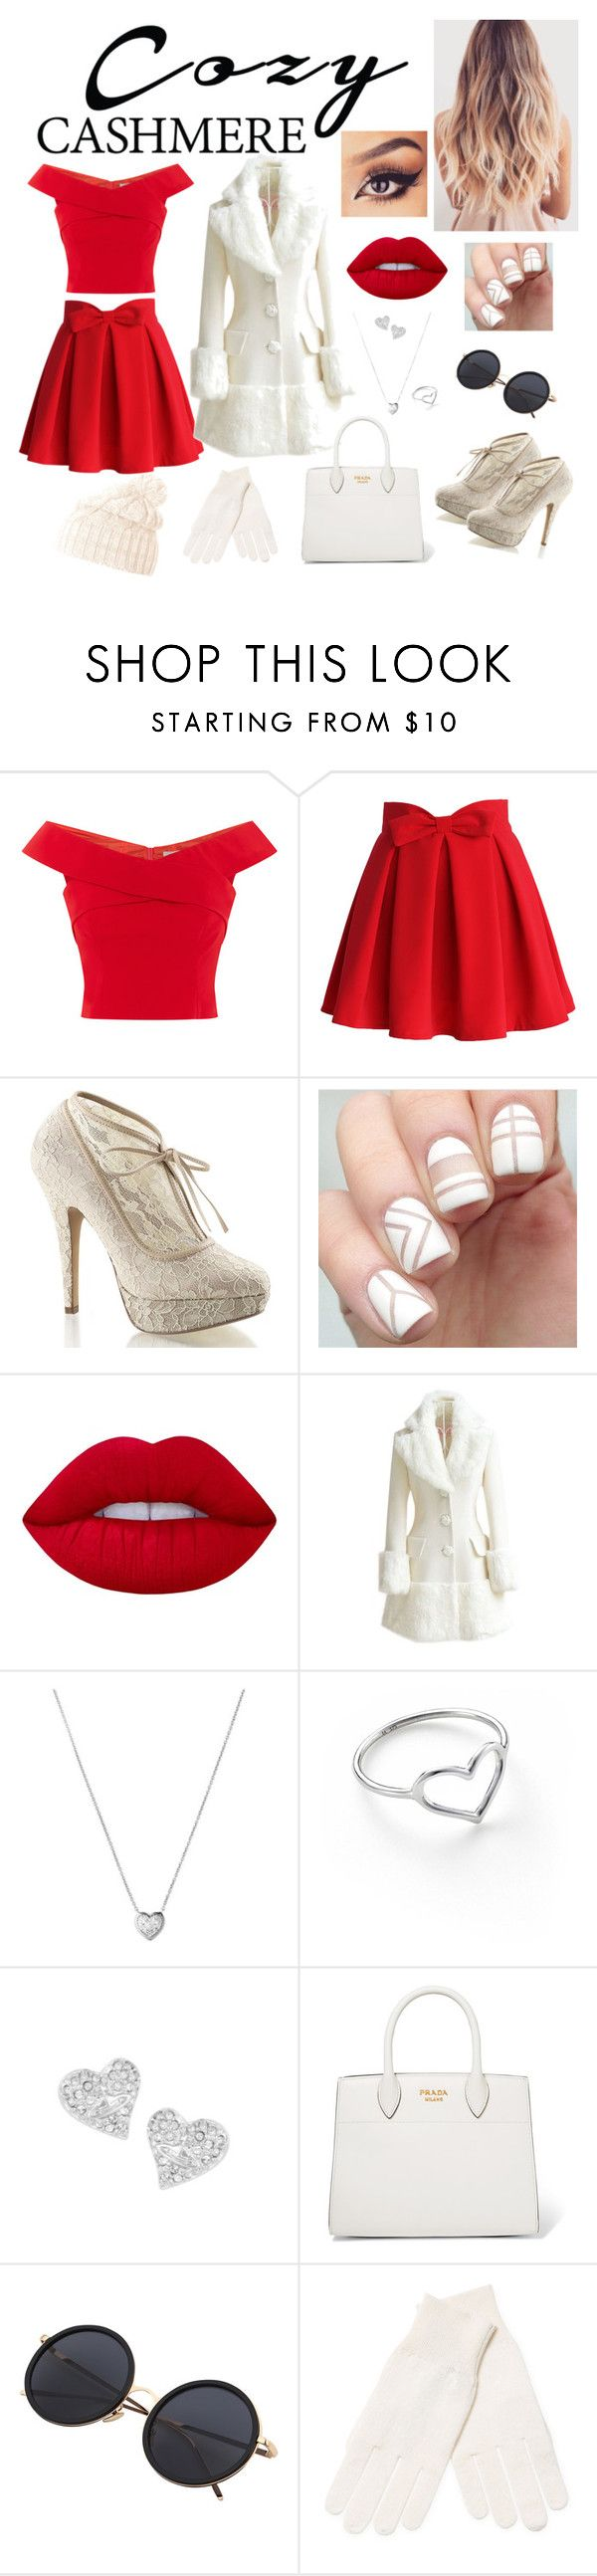 """Ação de Graças"" by atanaely-benaya ❤ liked on Polyvore featuring Chicwish, Pinup Couture, Lime Crime, WithChic, Links of London, Jordan Askill, Vivienne Westwood, Prada, White + Warren and Helly Hansen"